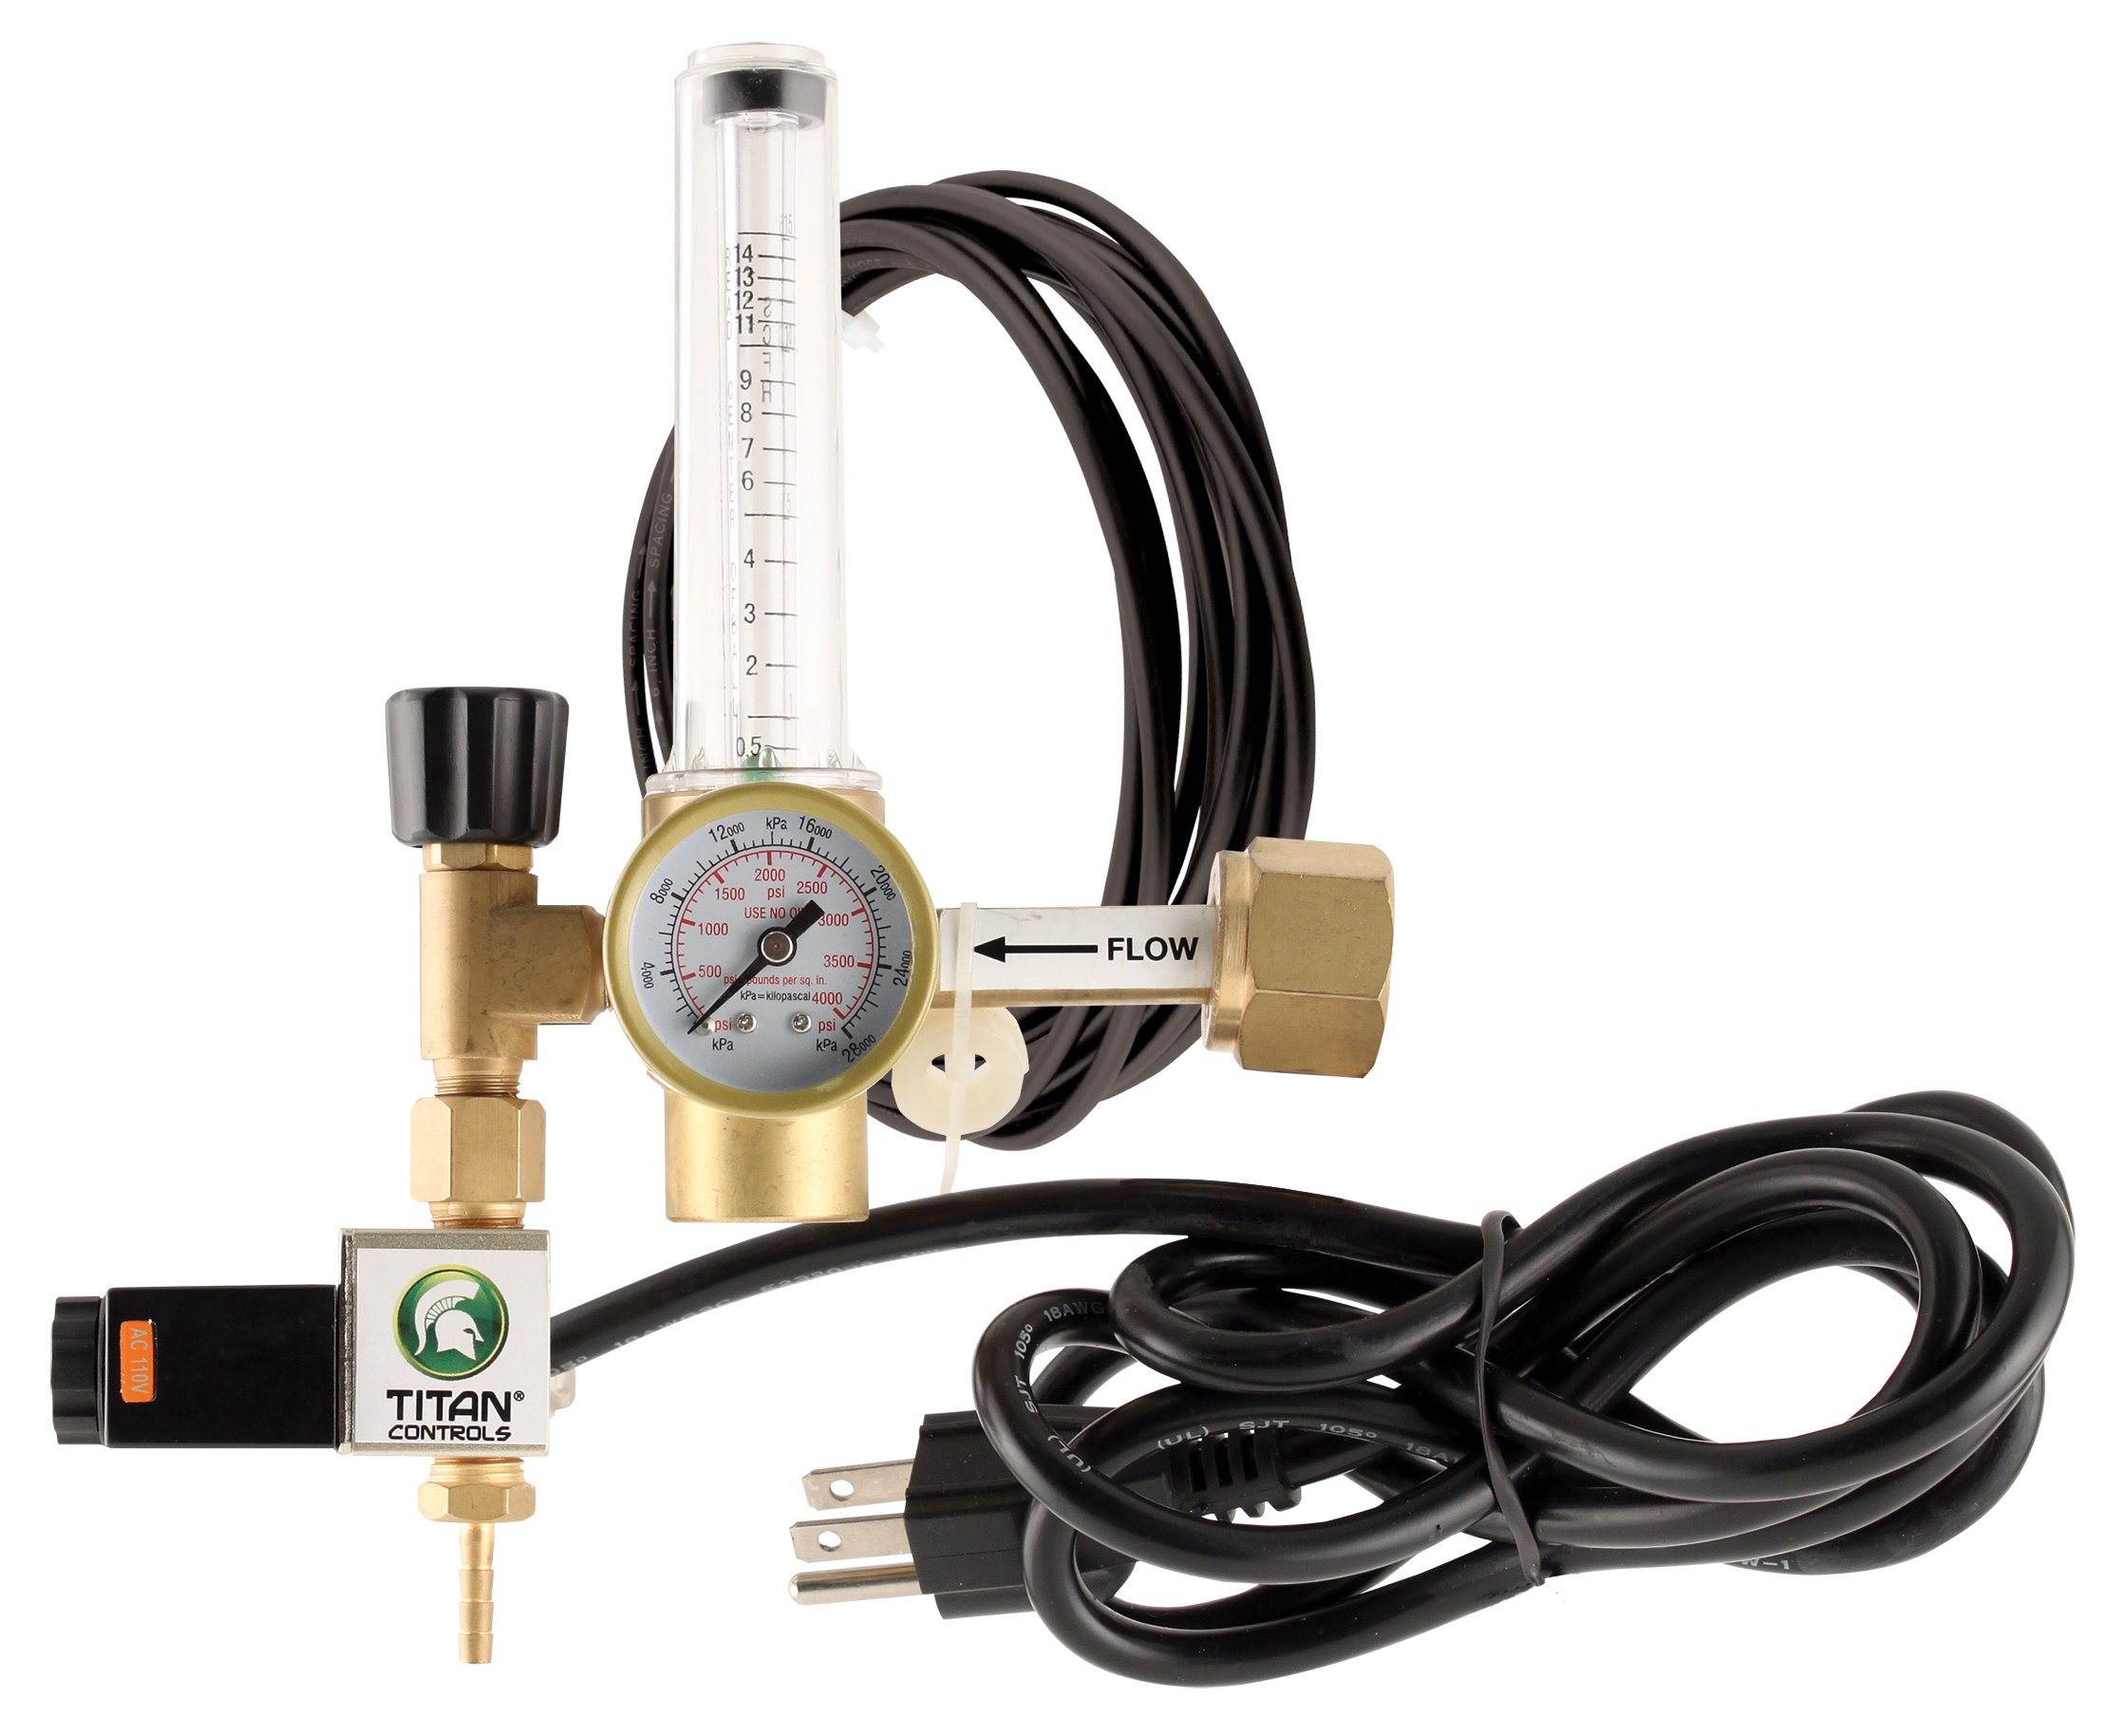 Titan Controls Carbon Dioxide (CO2) Regulator for 120V Controllers & Timers by Titan Controls